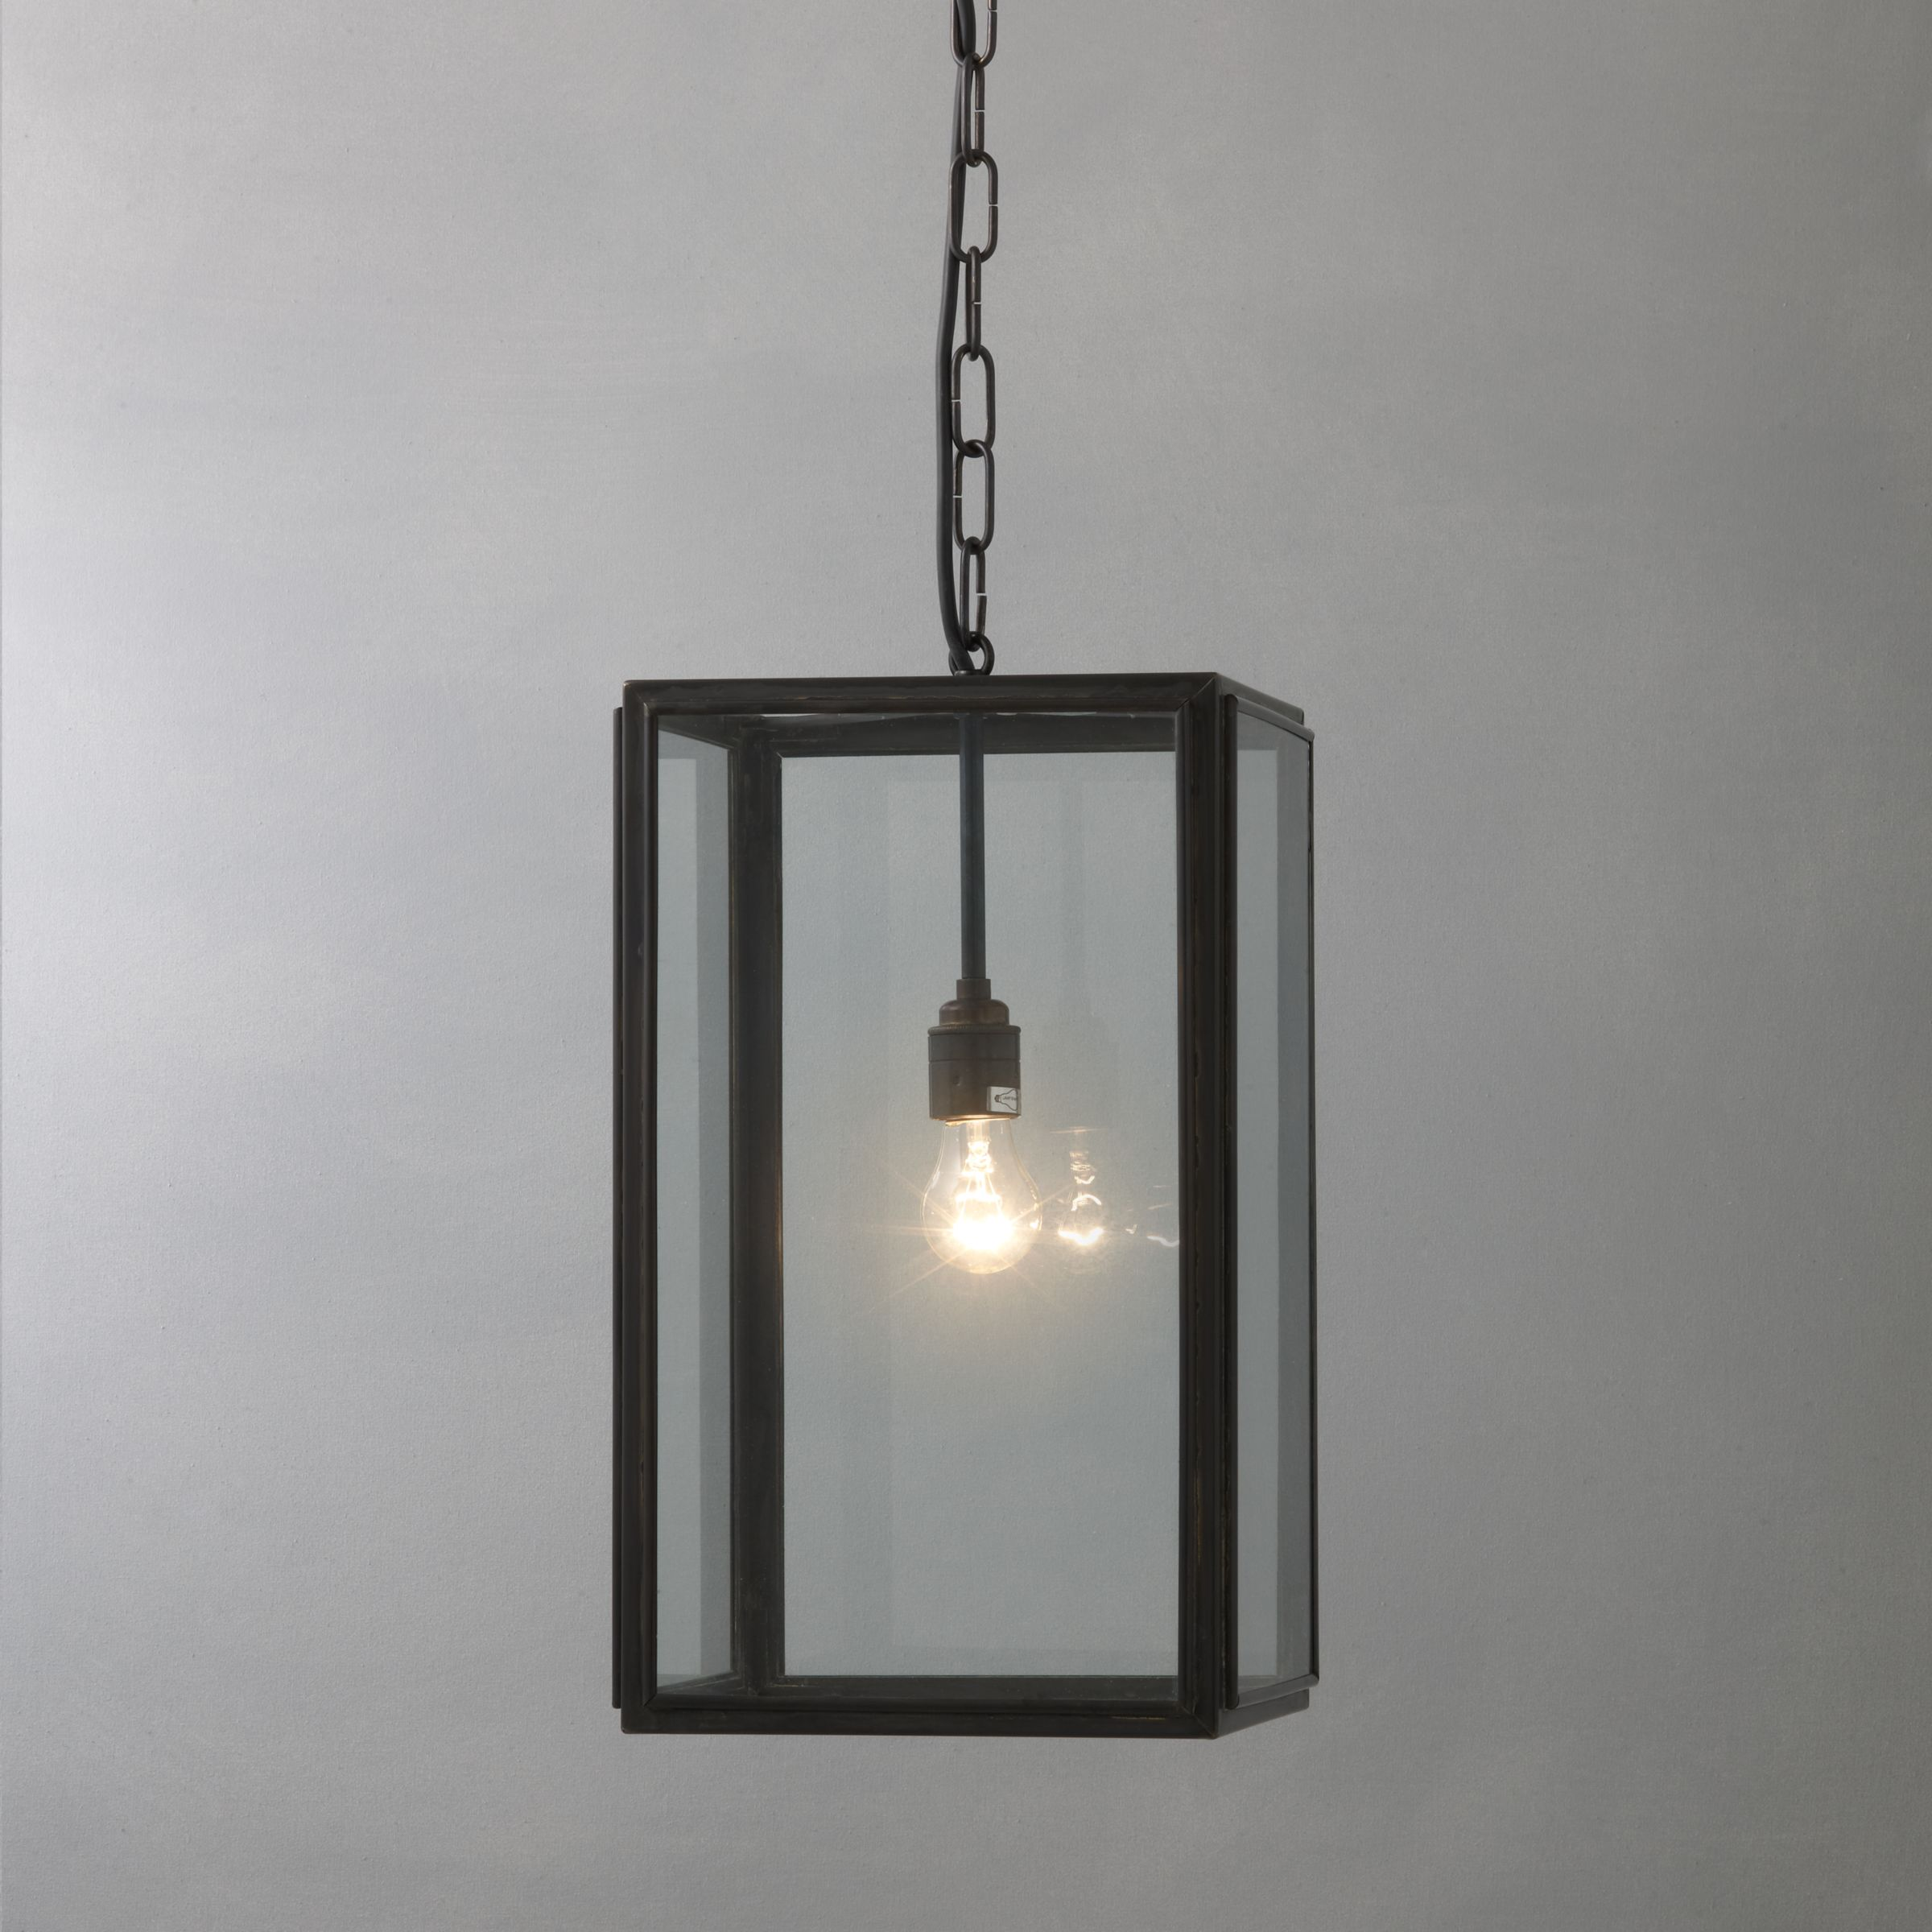 Davey Lighting Davey Lighting Square Indoor Pendant, Large